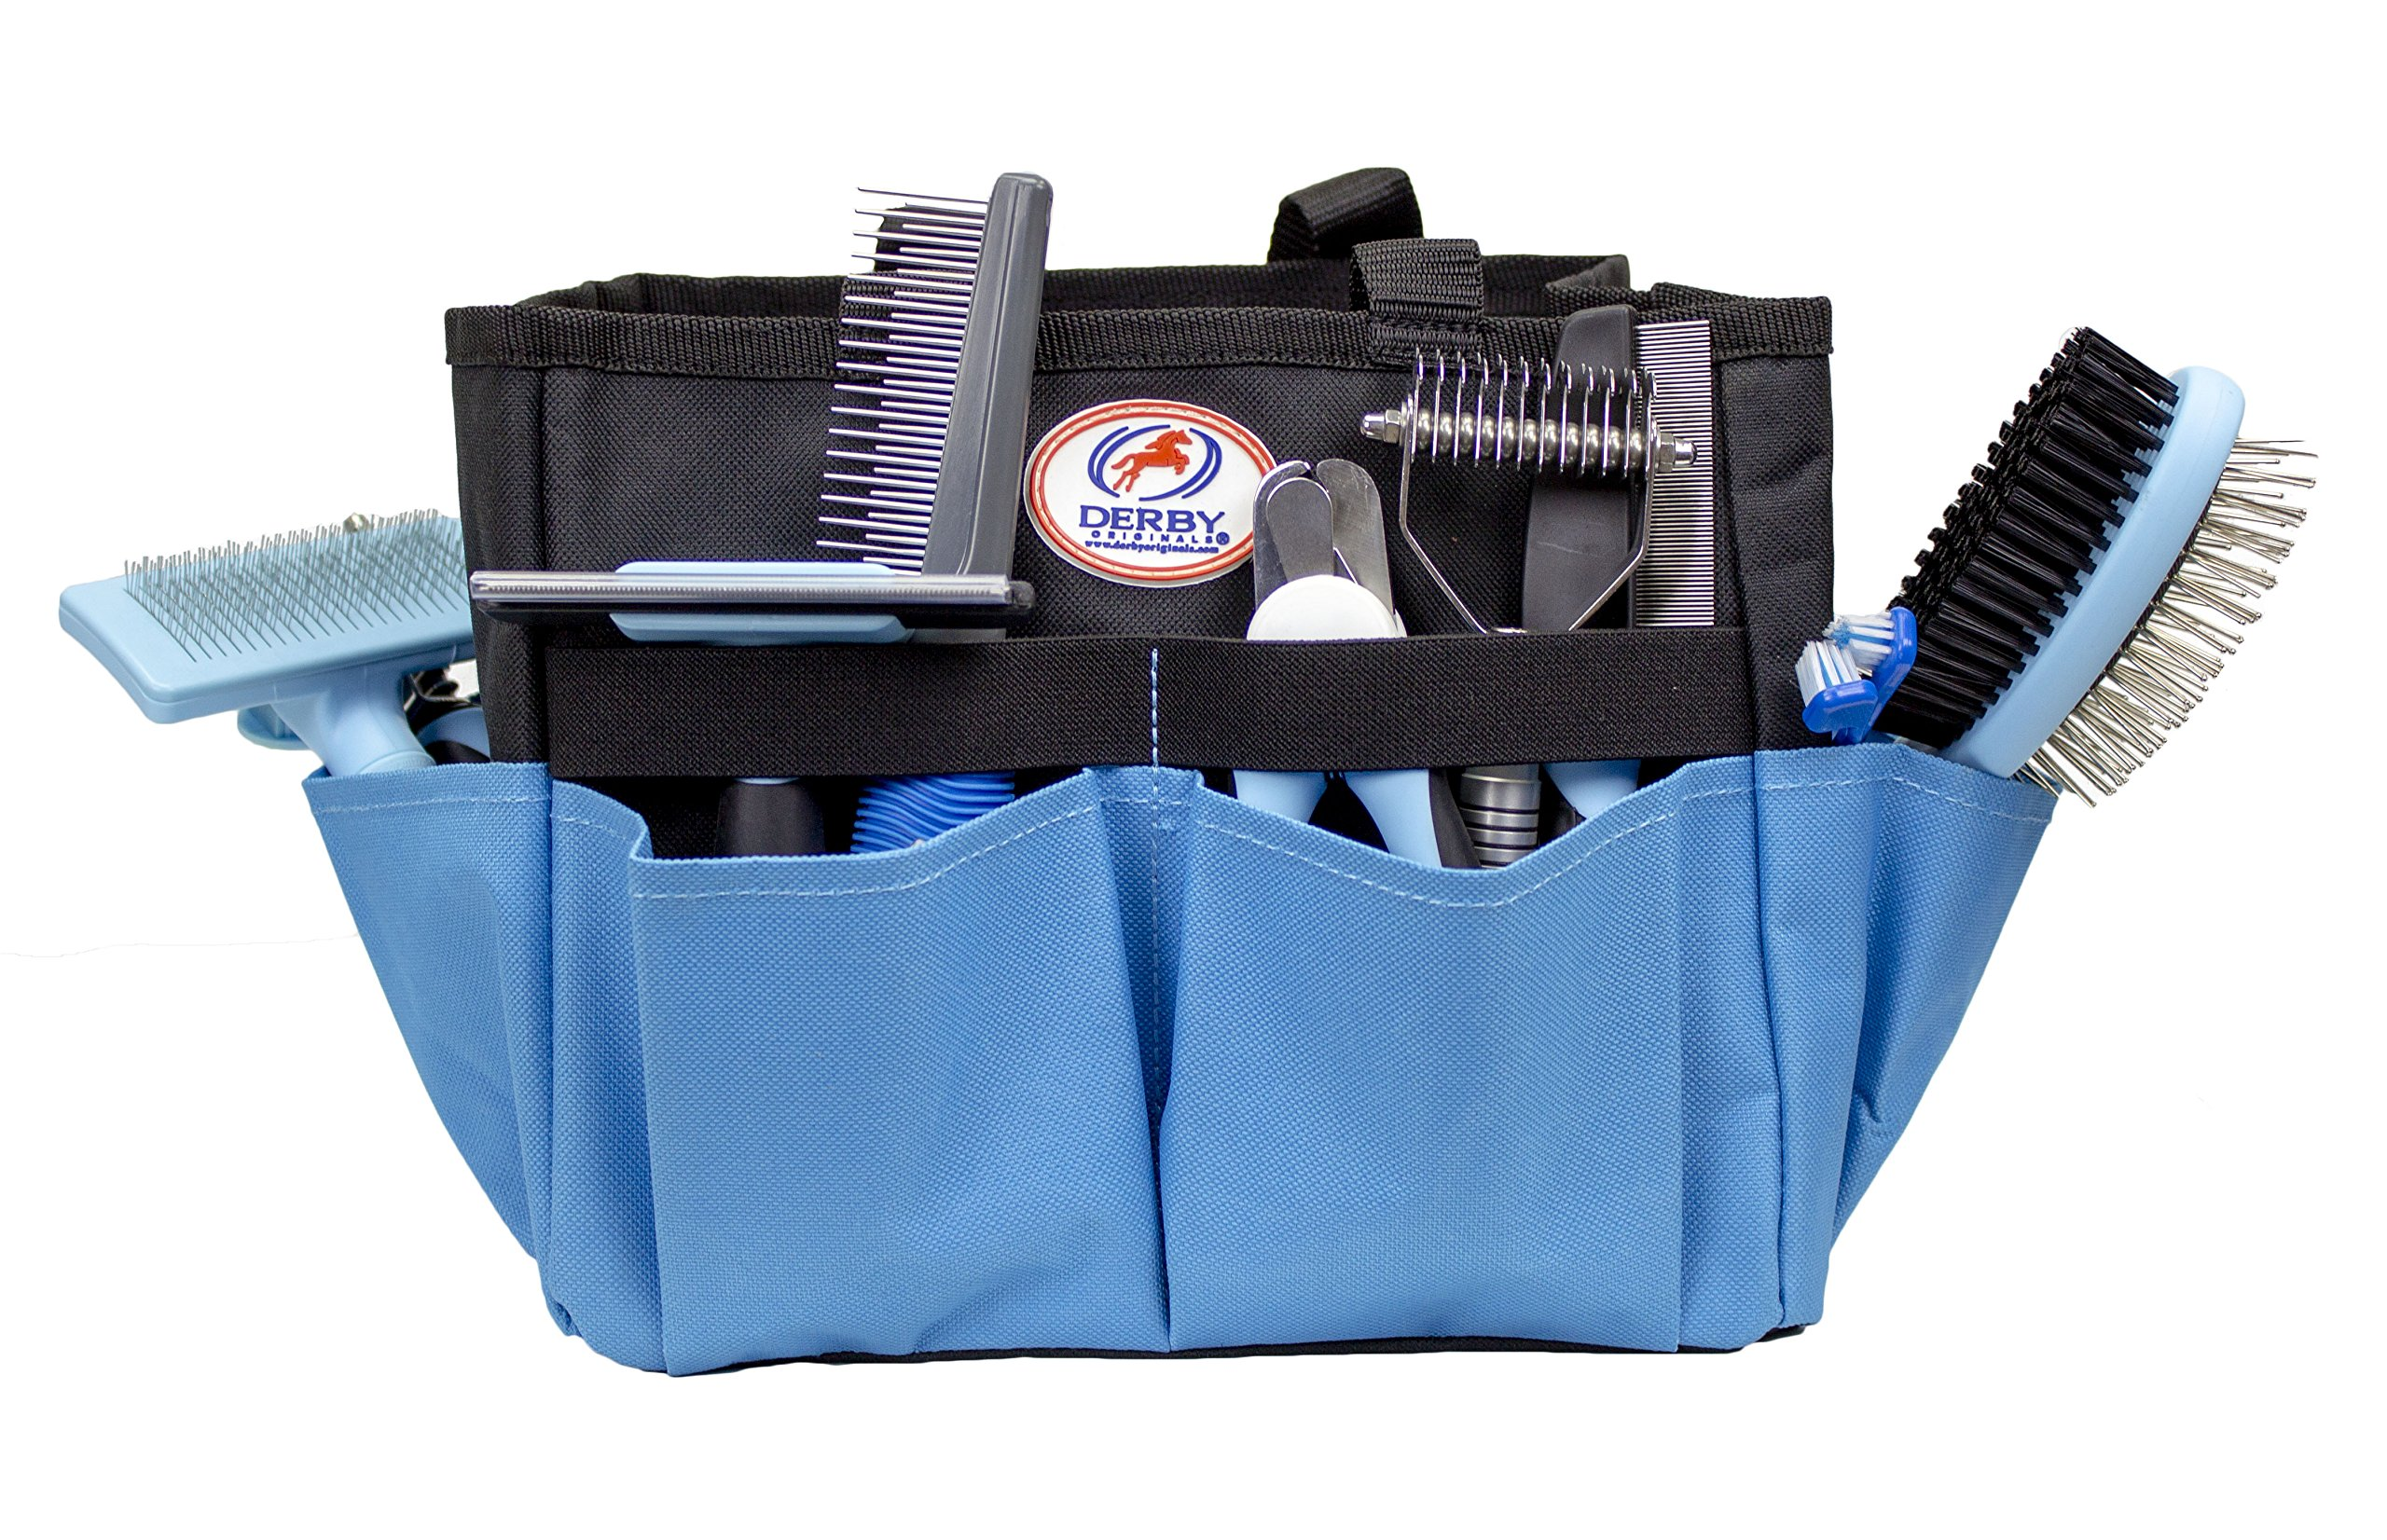 cuteNfuzzy 11 Piece New Pet Small or Large Grooming Starter Kits in 2 Colors for Dogs & Cats, Blue, Large